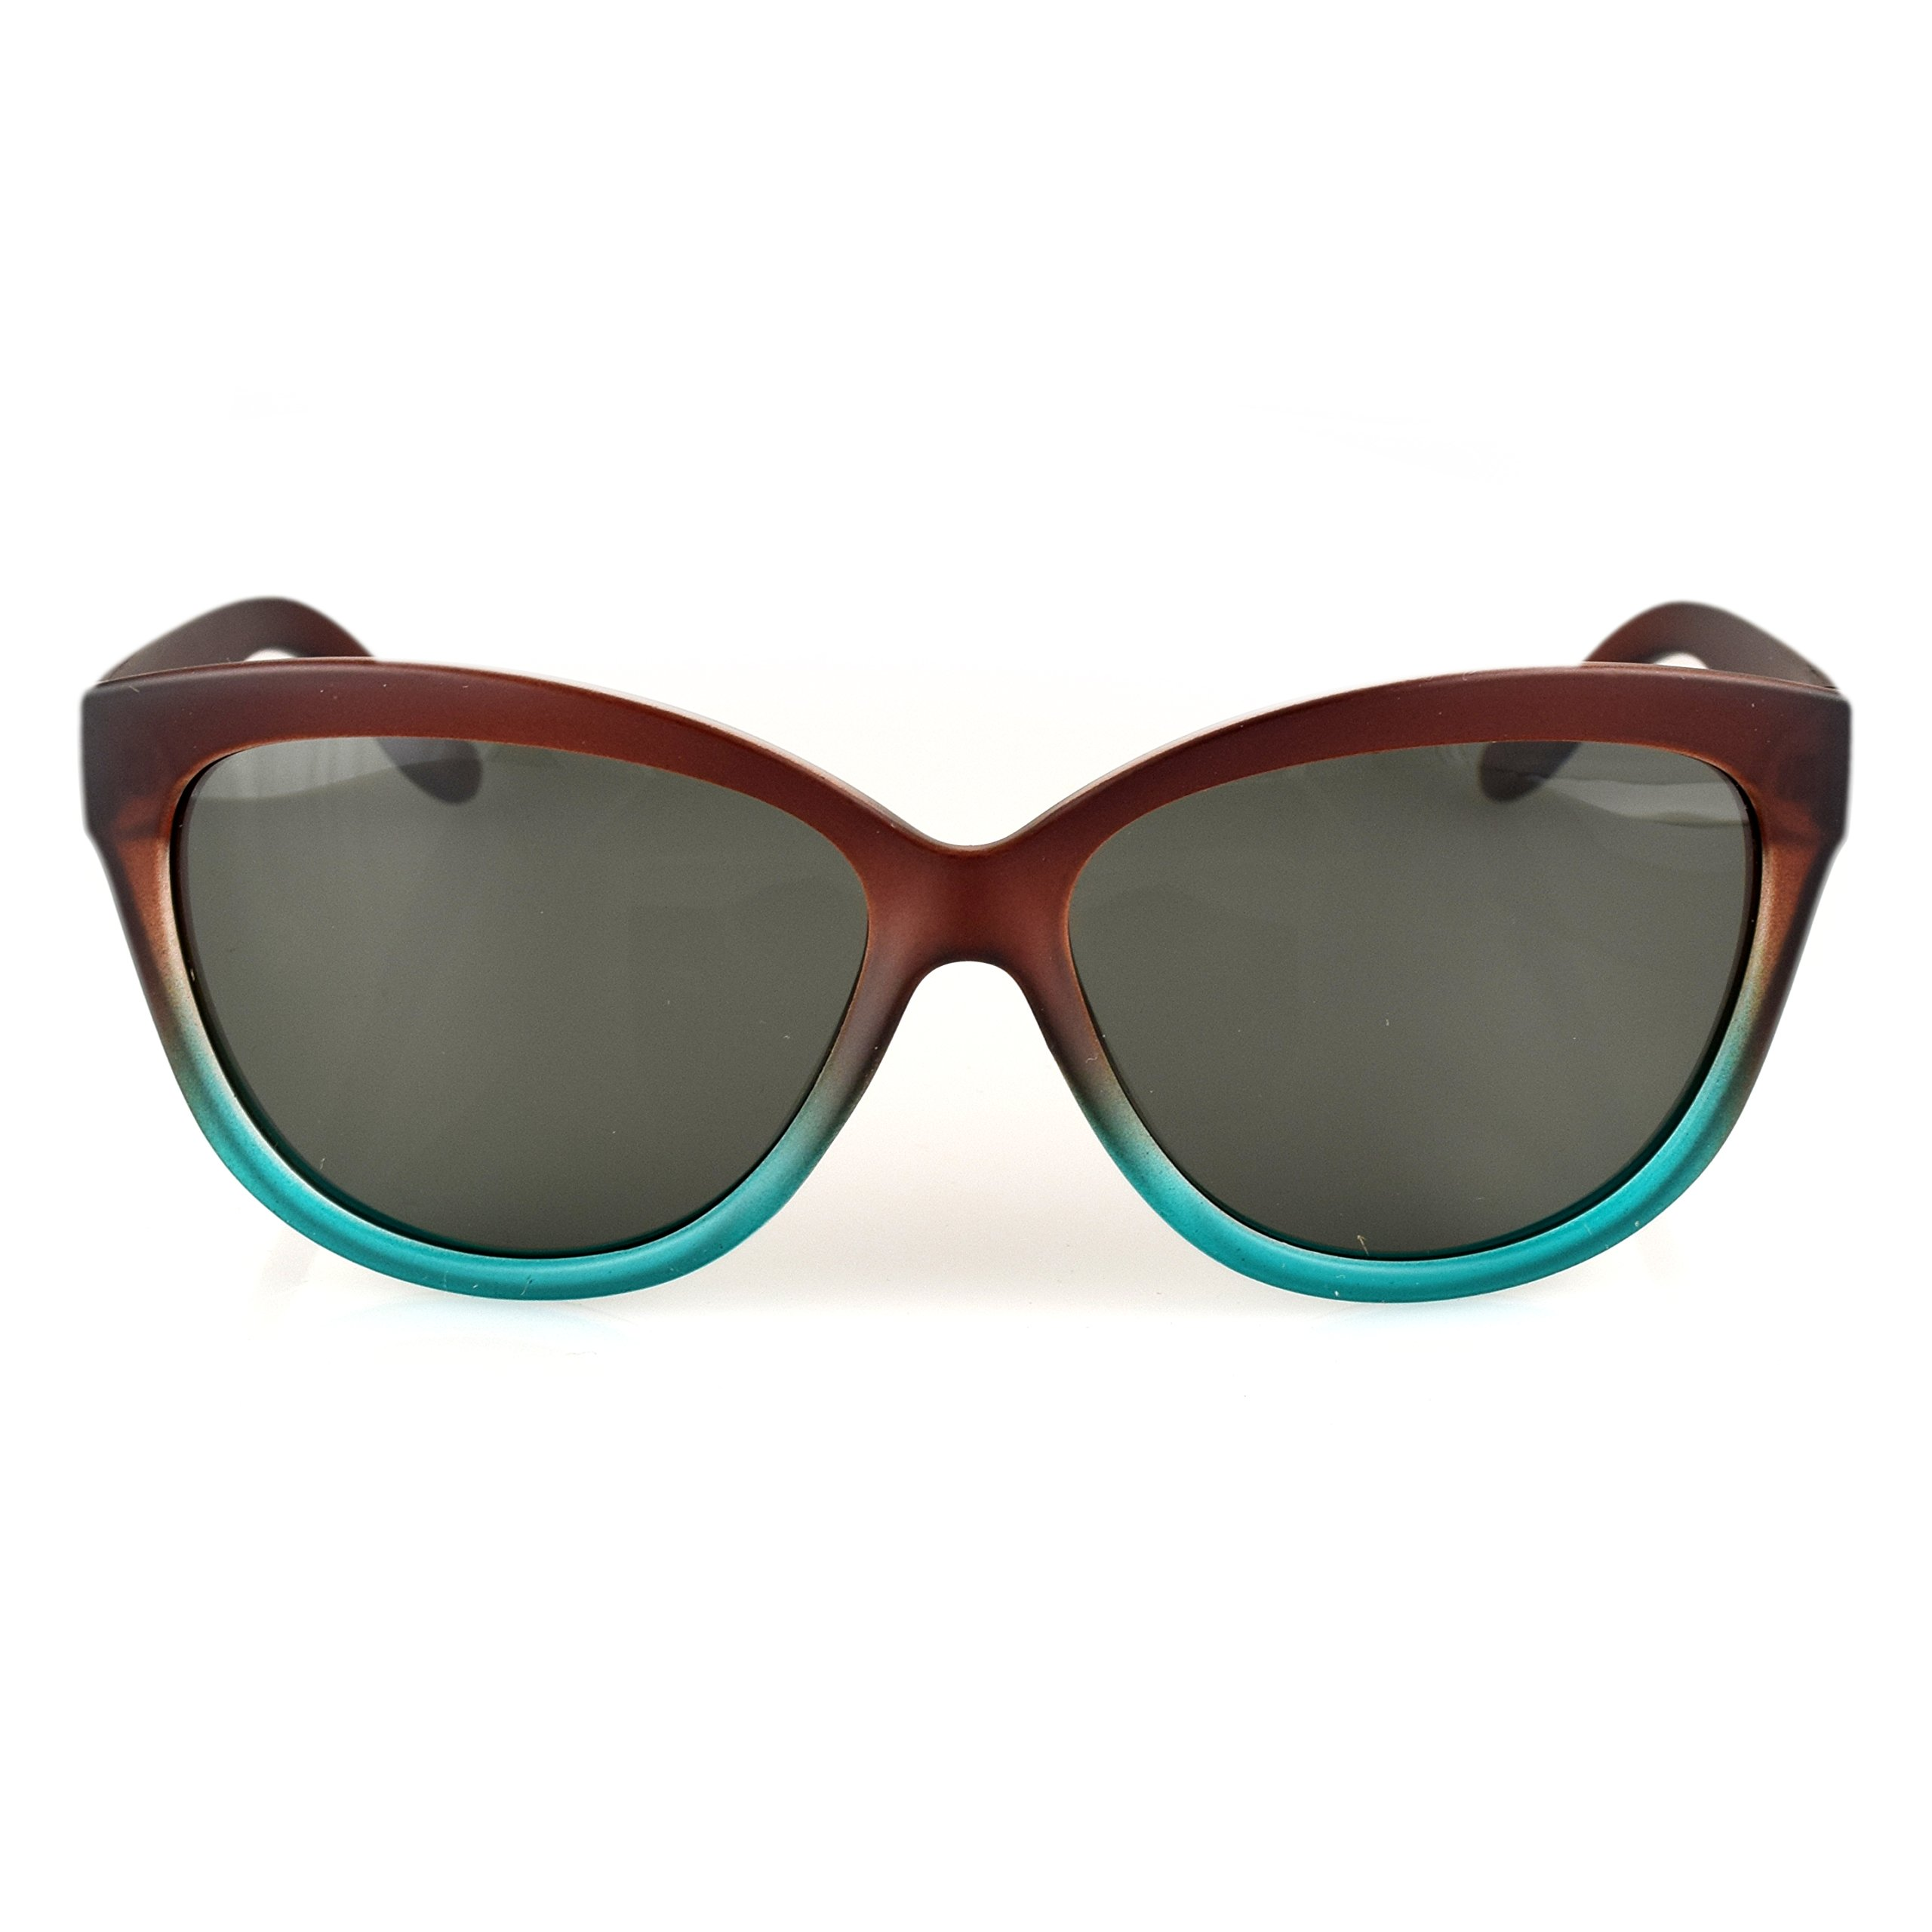 13Fifty Miami Women's Sunglasses, Cat Eye Glasses Brown & Green Fashion Frame, Green Gray Polarized Lenses by 13Fifty (Image #3)